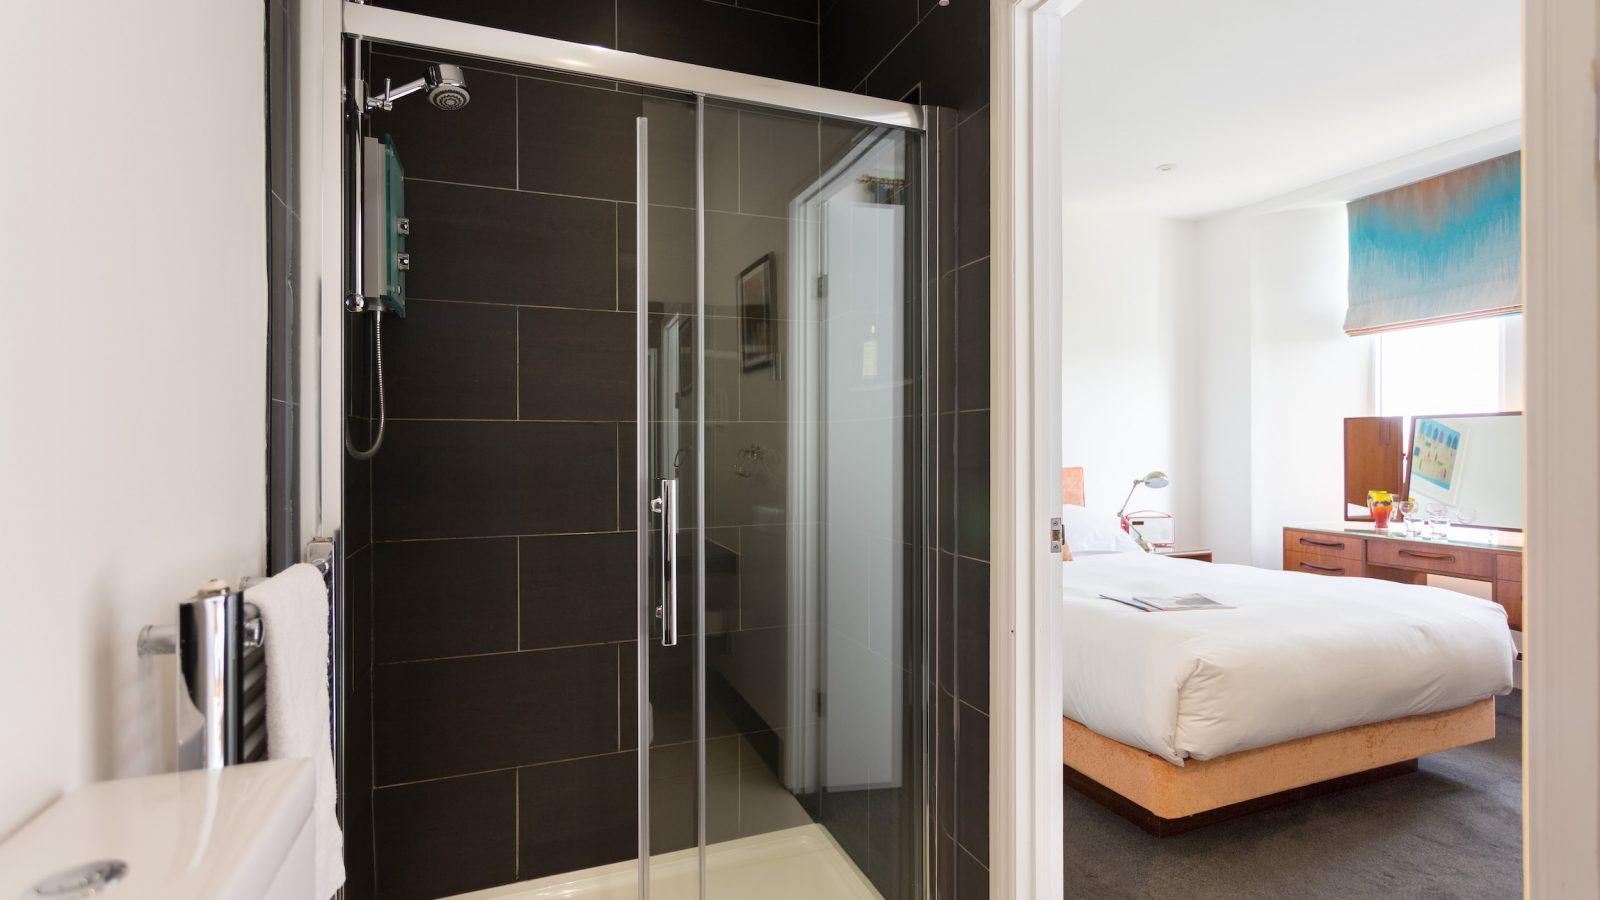 Large electric shower in ensuite